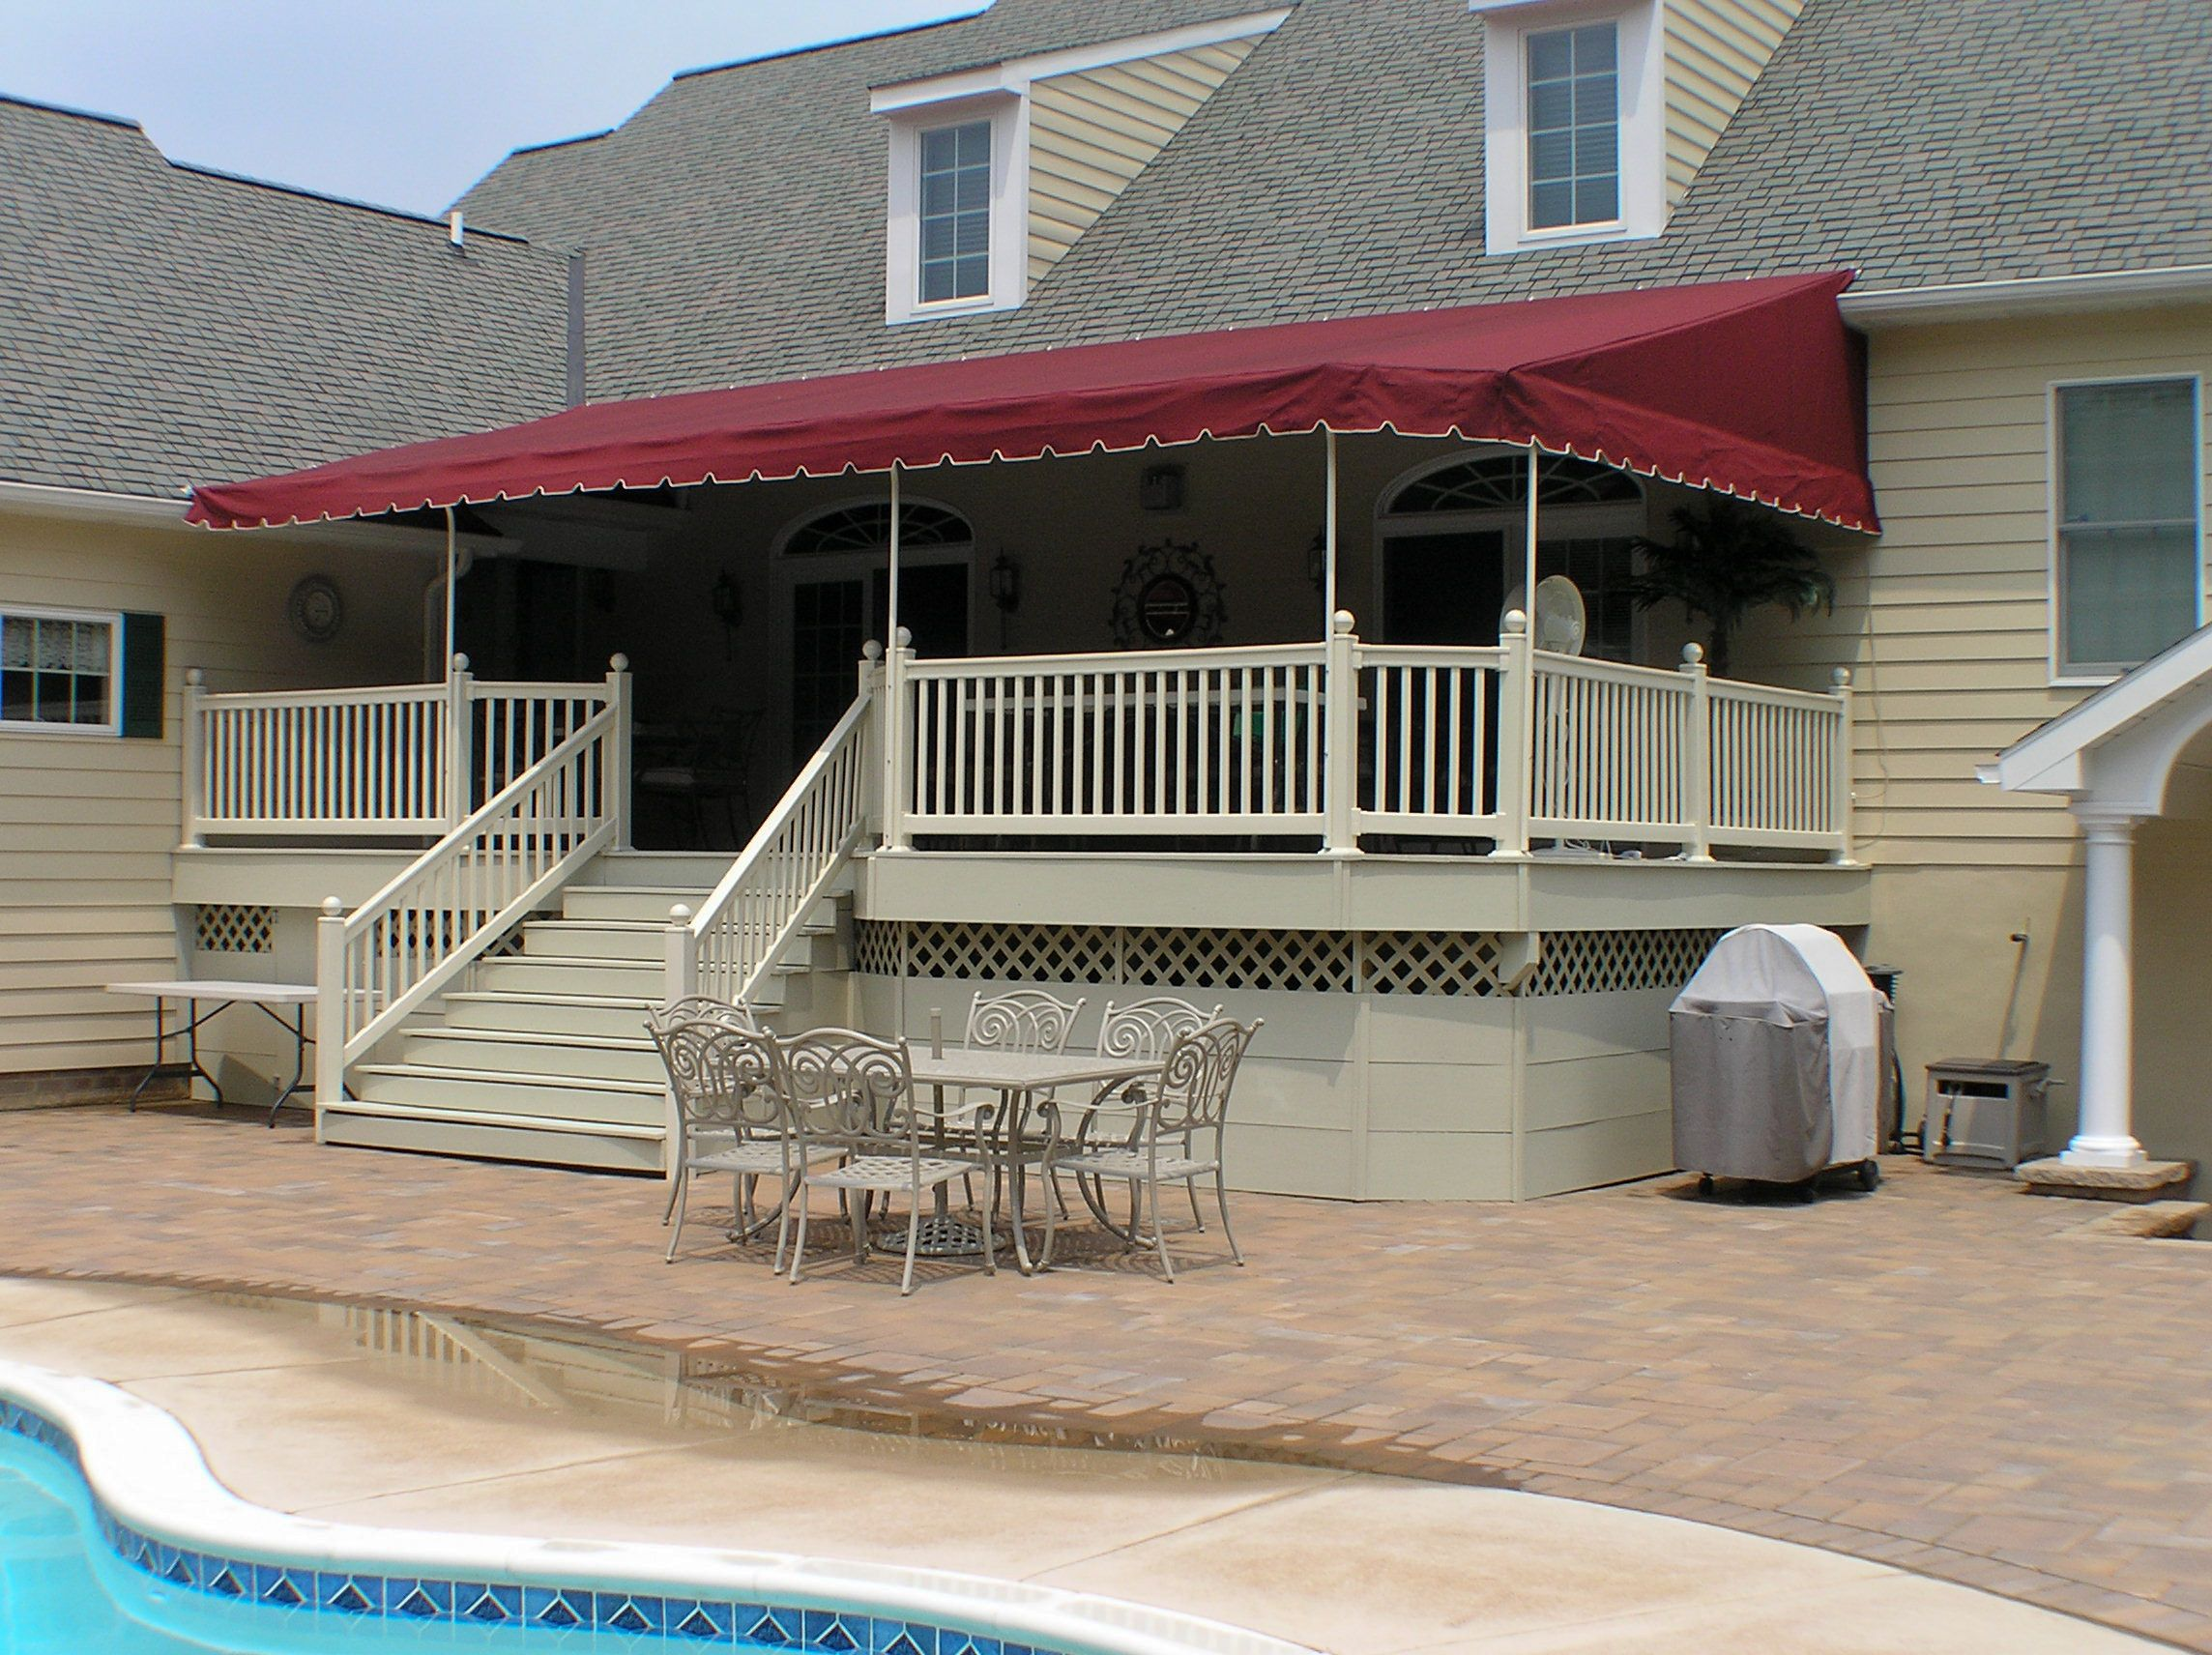 awning jefco deck archives for stationary patio awnings manufacturing application decks porch